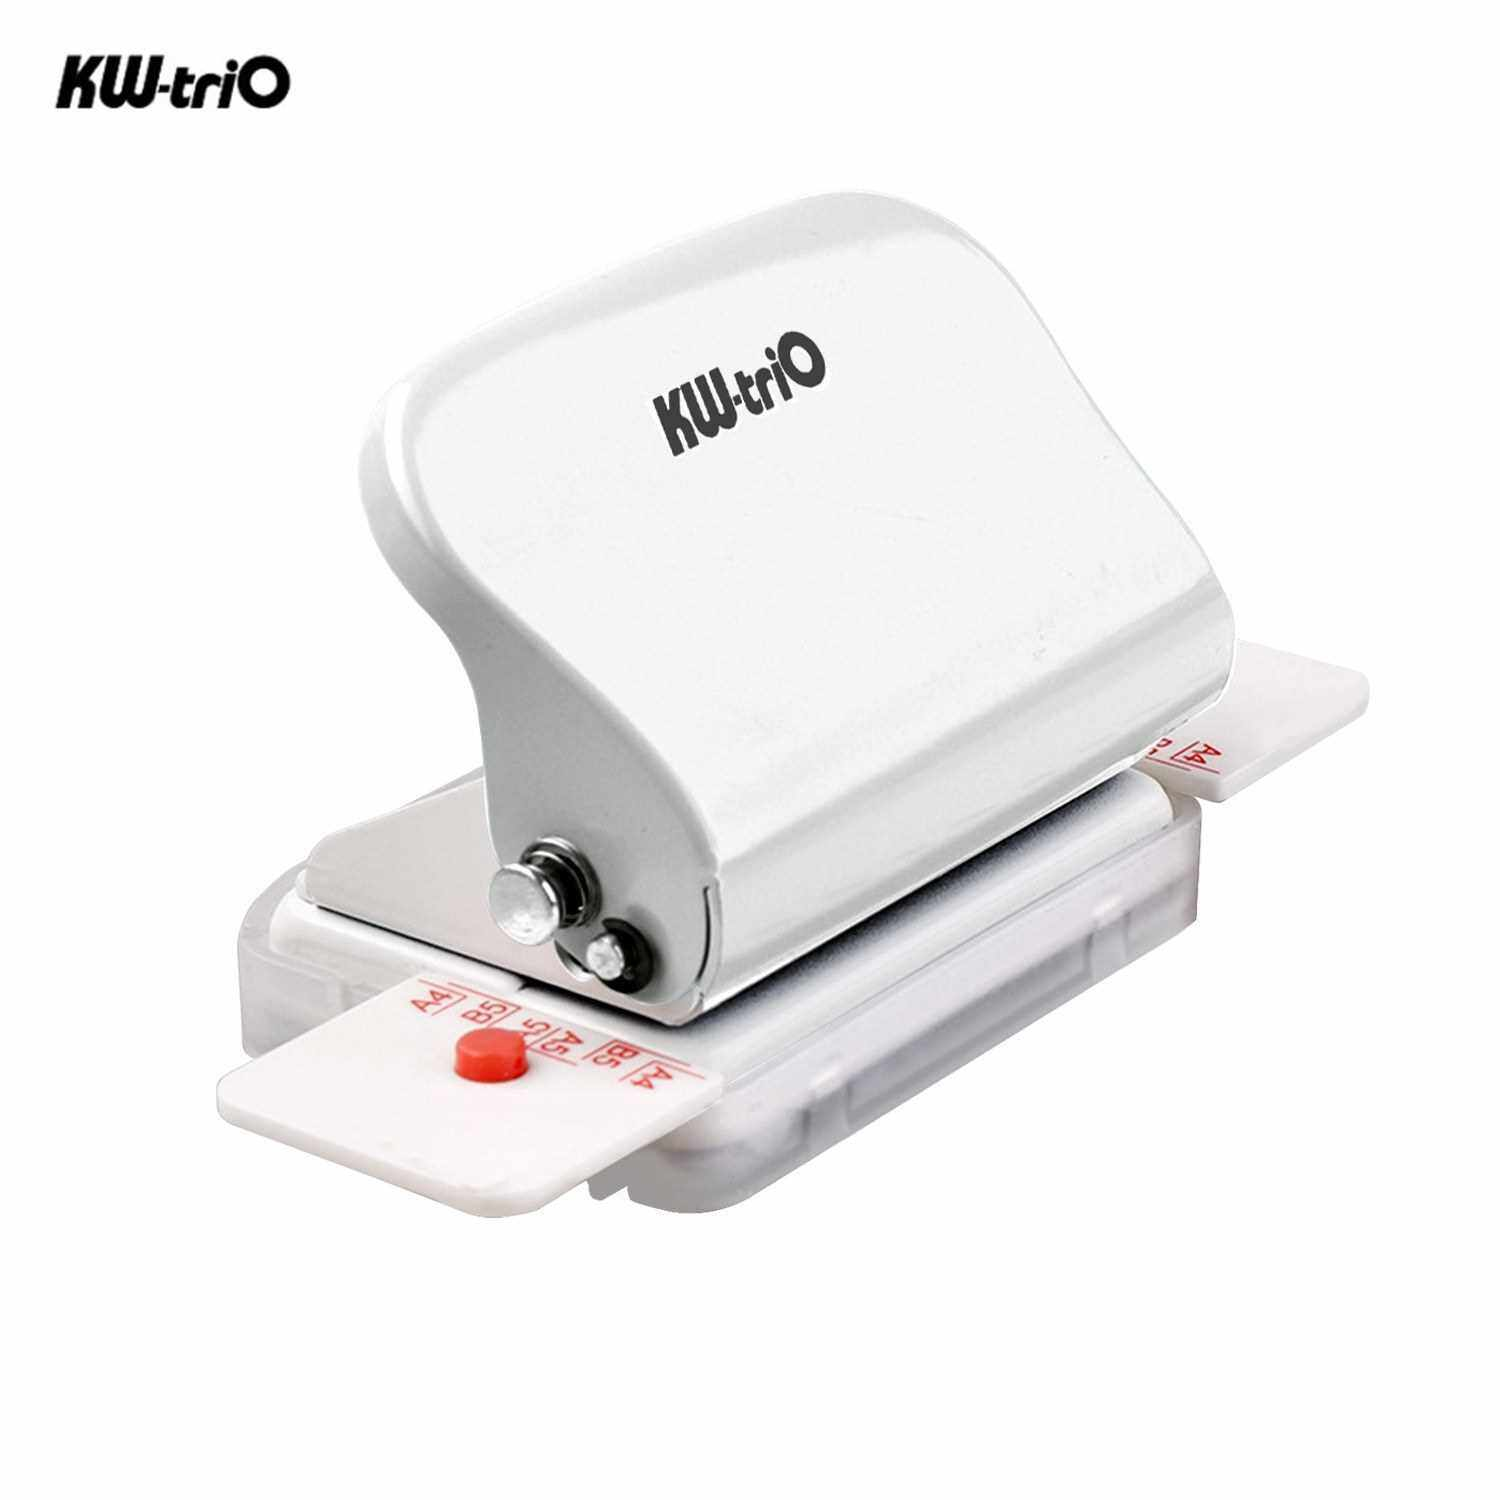 KW-trio 6-Hole Paper Punch Handheld Metal Hole Puncher 5 Sheet Capacity 6mm for A4 A5 B5 Notebook Scrapbook Diary Planner (White)